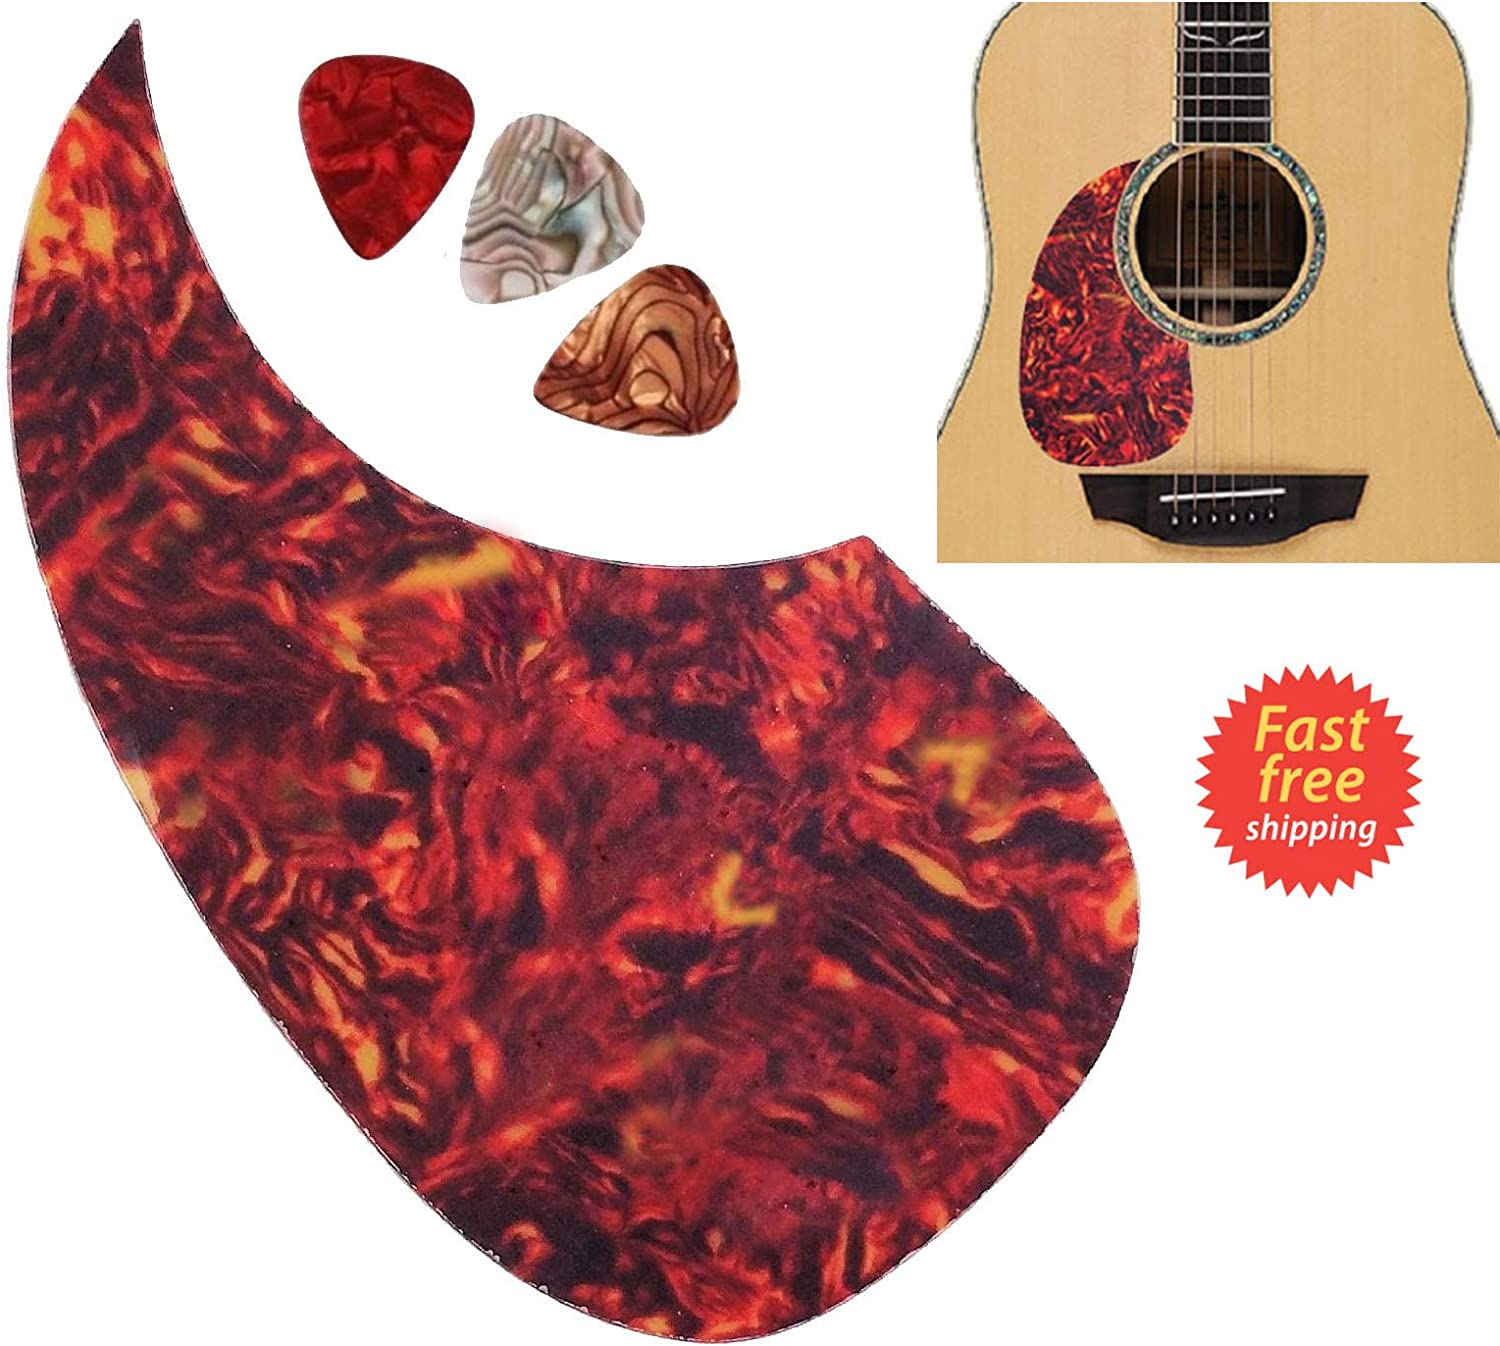 Musiclily Left Handed Oversize Teardrop Acoustic Guitar Self-adhesive Pickguard for Martin D28 Style guitar Black Pearl